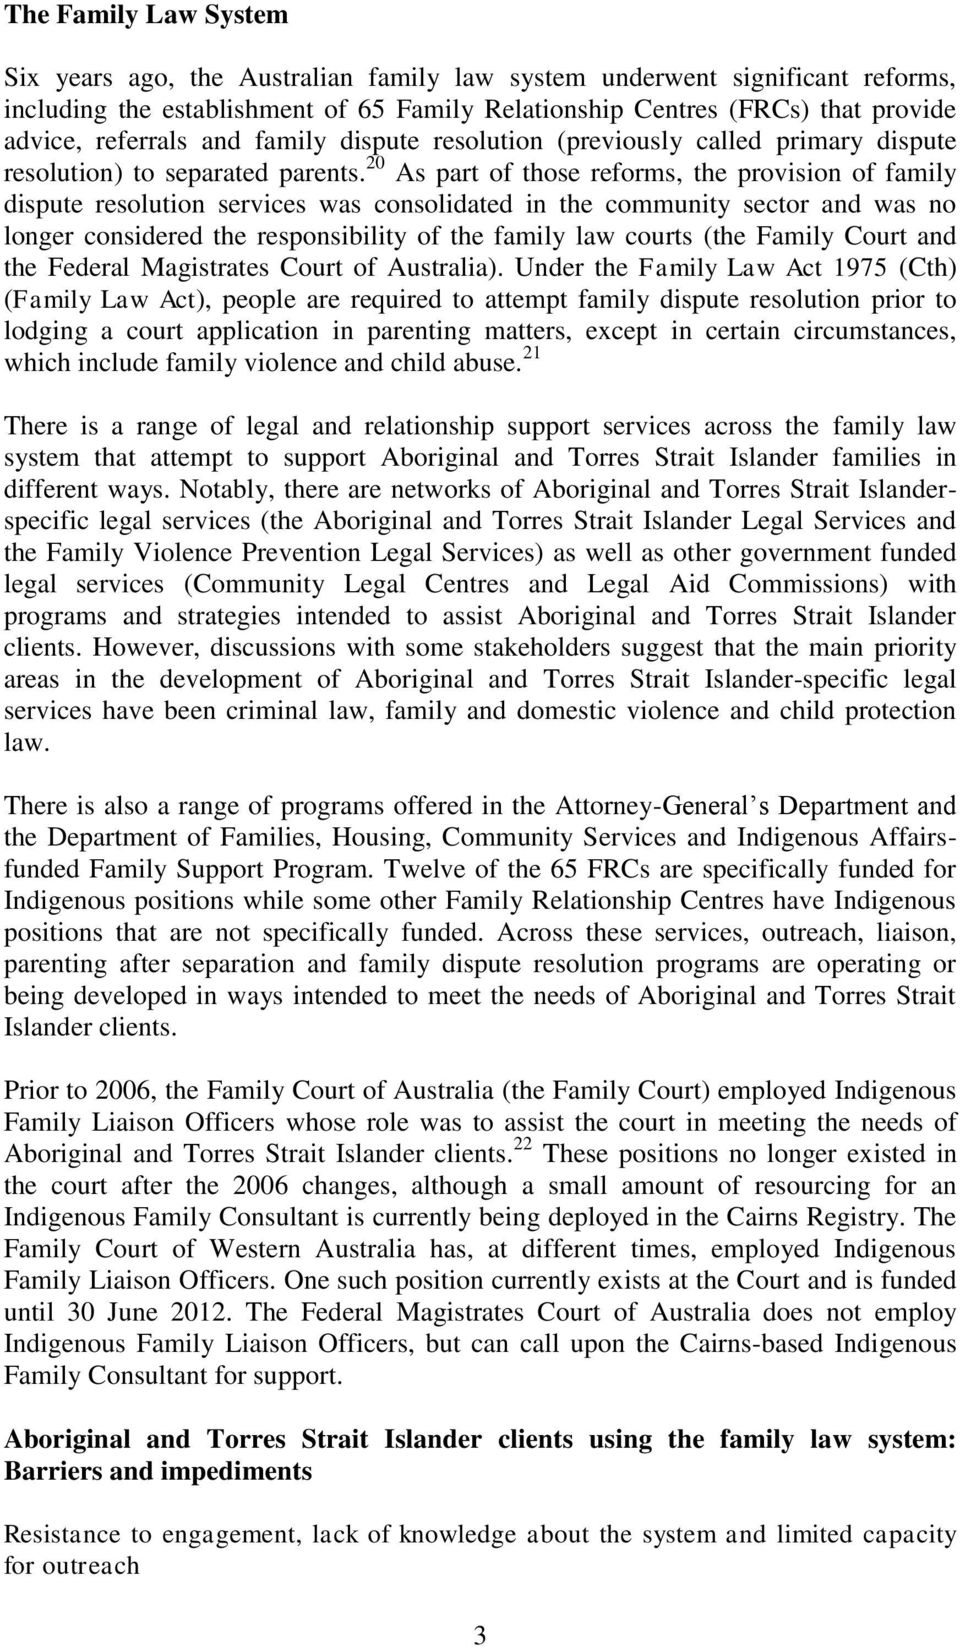 20 As part of those reforms, the provision of family dispute resolution services was consolidated in the community sector and was no longer considered the responsibility of the family law courts (the